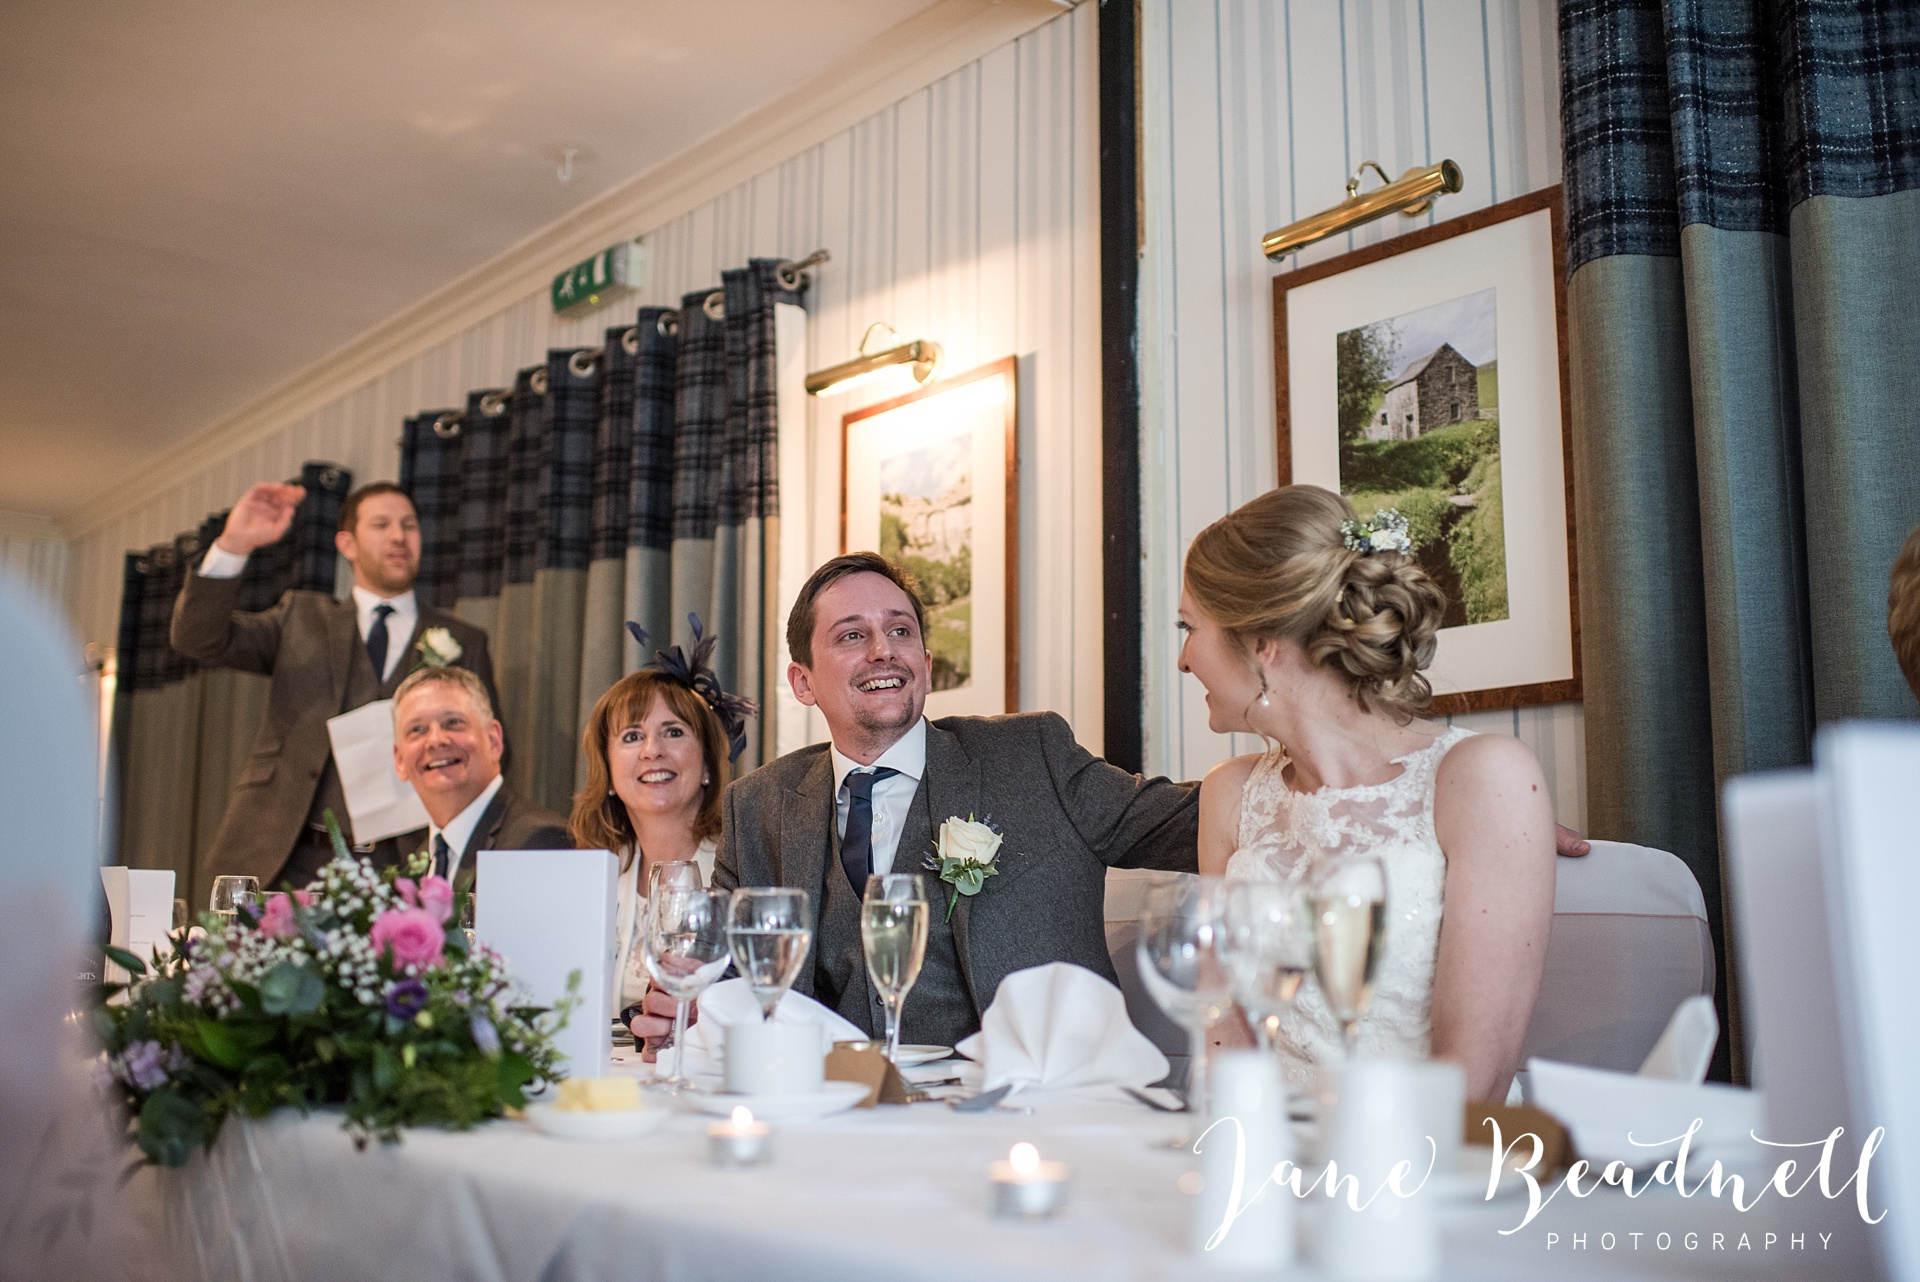 Otley Chevin Lodge wedding photography by Jane Beadnell Photography Leeds_0151